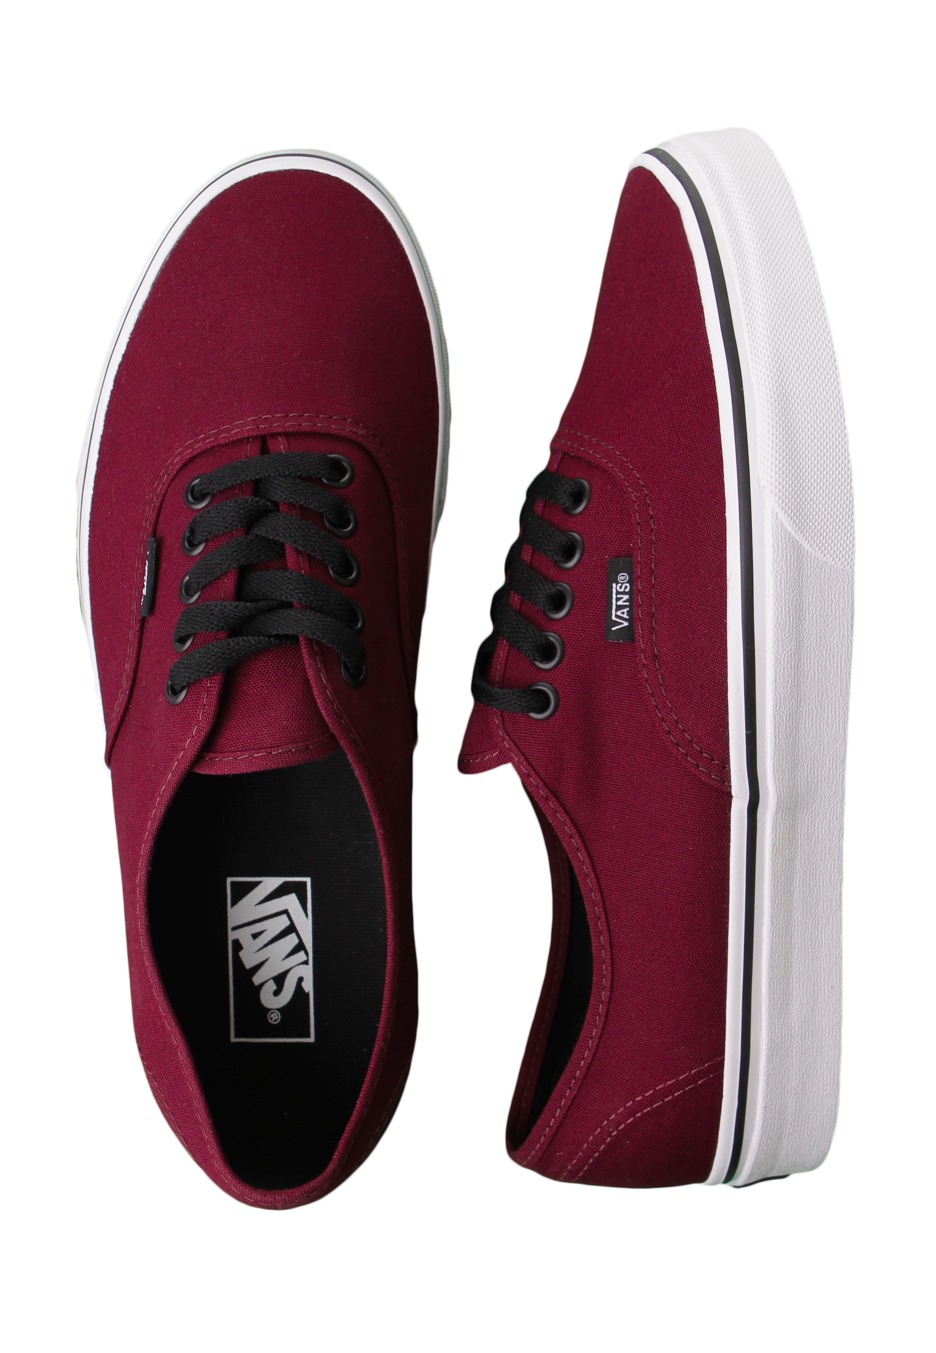 Vans - Authentic Port Royale Black - Shoes - Impericon.com UK 0489ec1d5